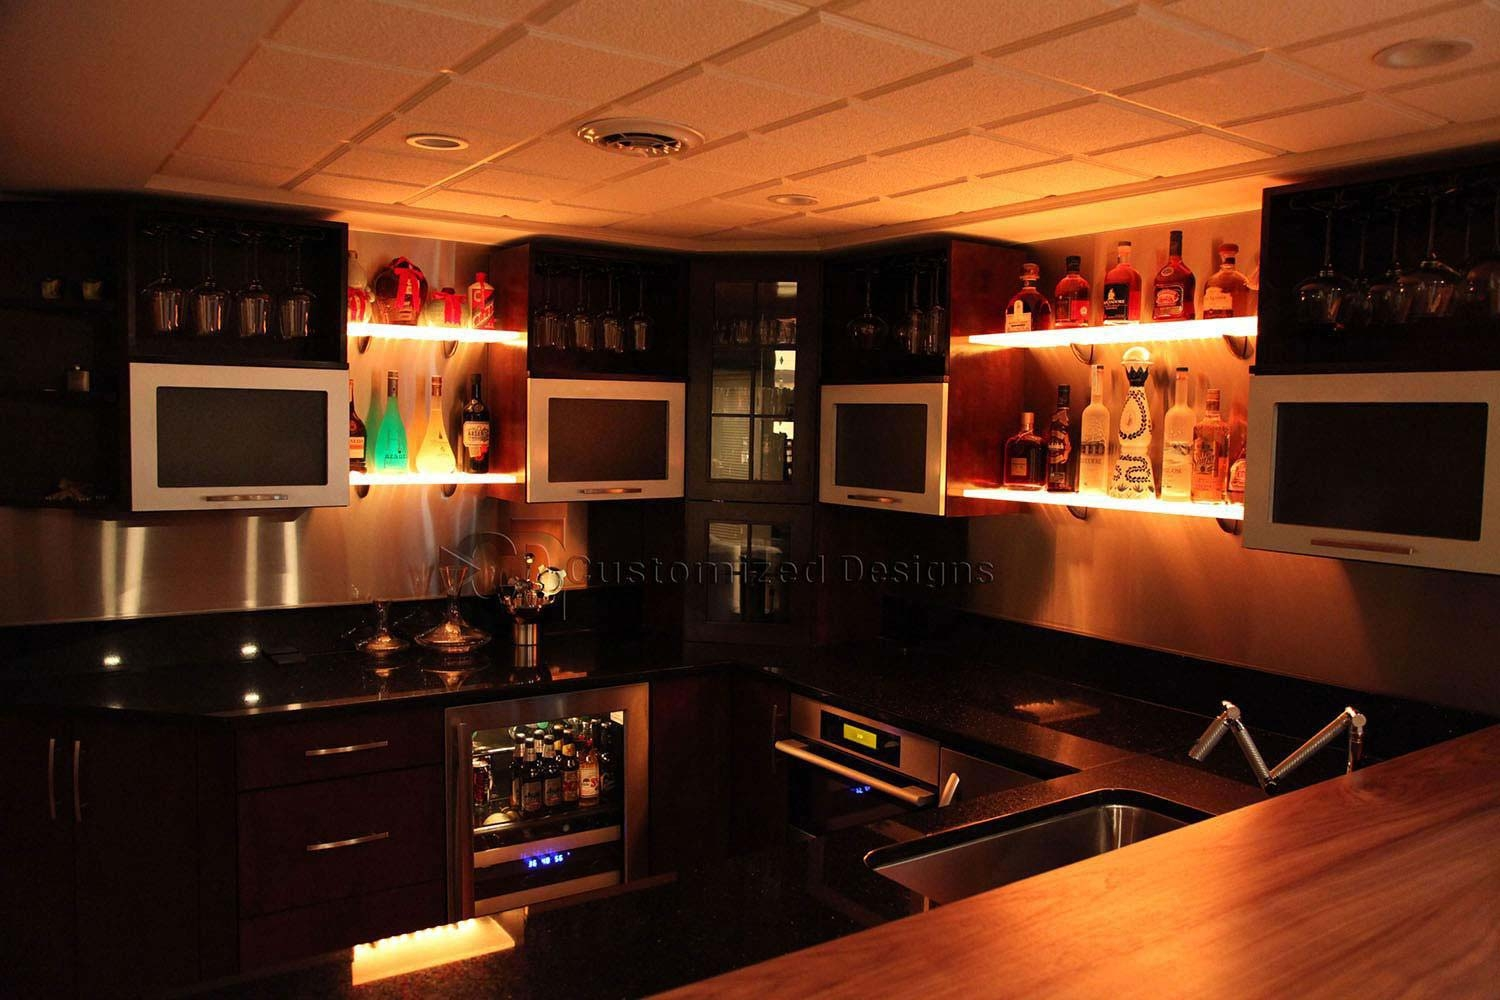 Led Lighted Shelves Back Bar Shelving For Home Bars Restaurants With Regard To Led Floating Shelves (Image 12 of 15)